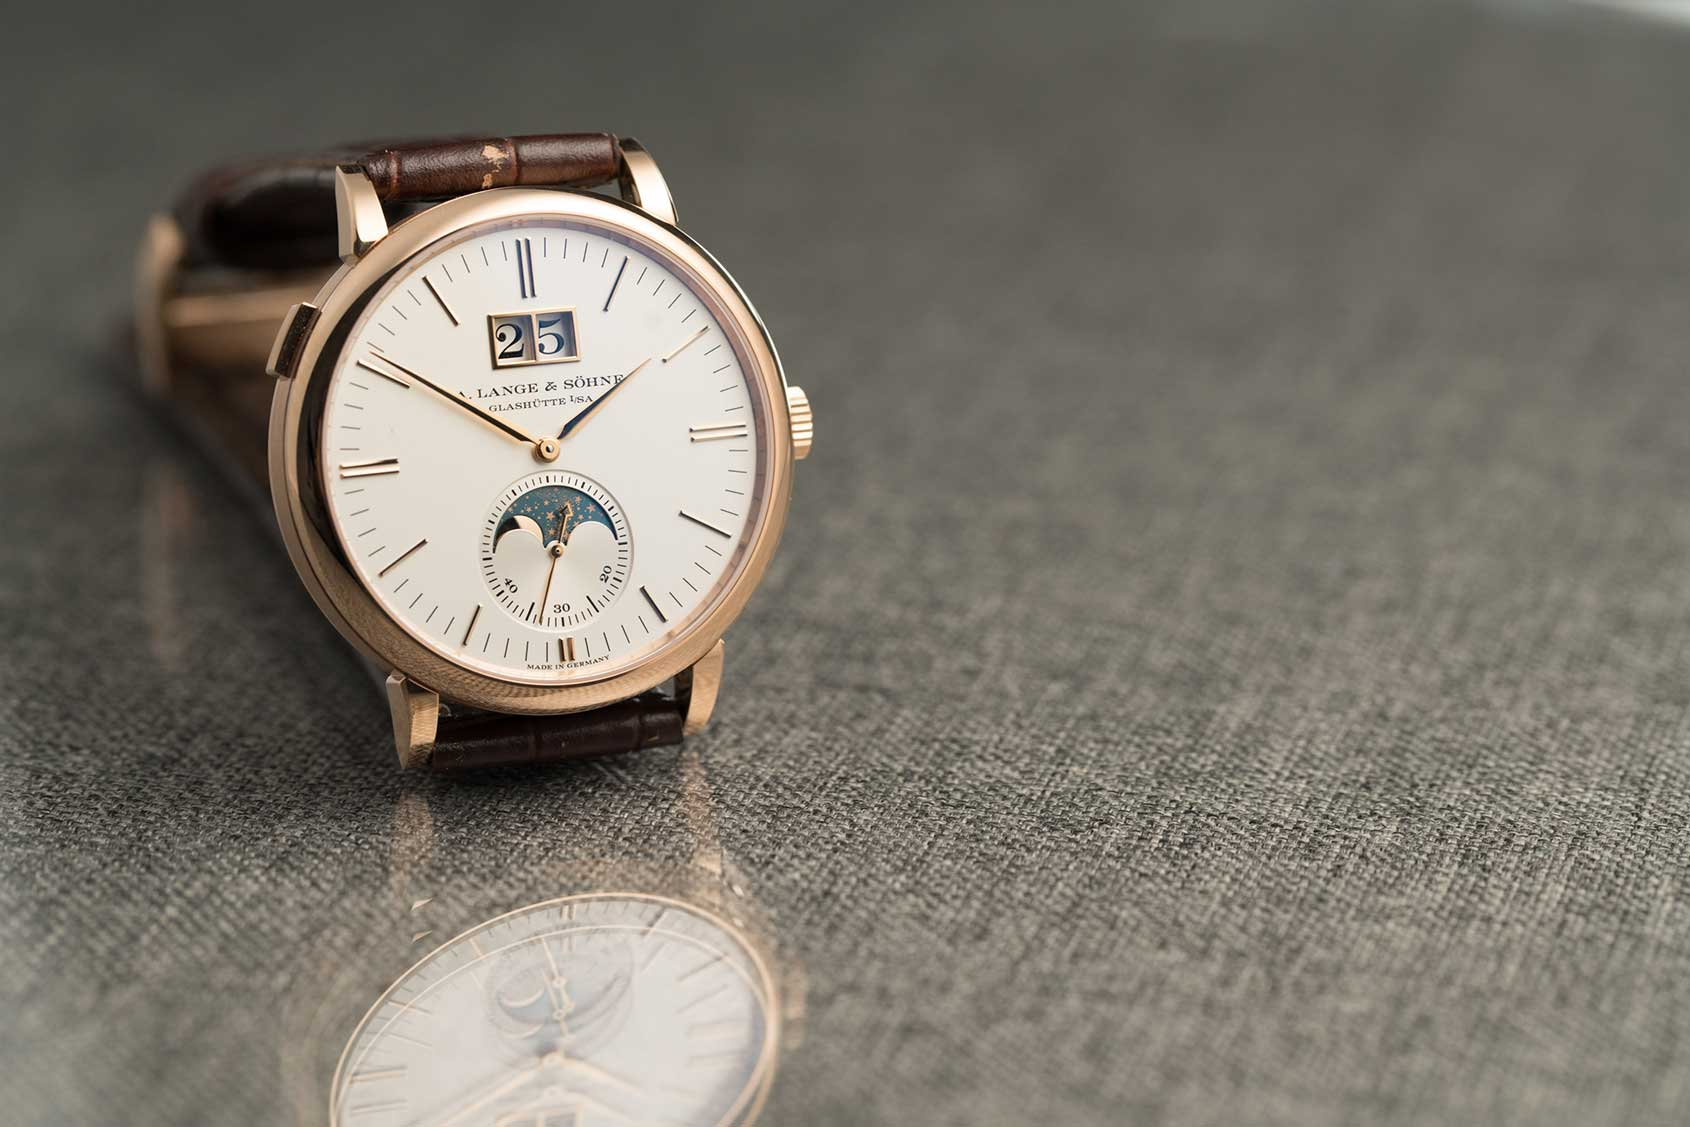 A. Lange & Sohne Saxonia - introduction to the watch internet